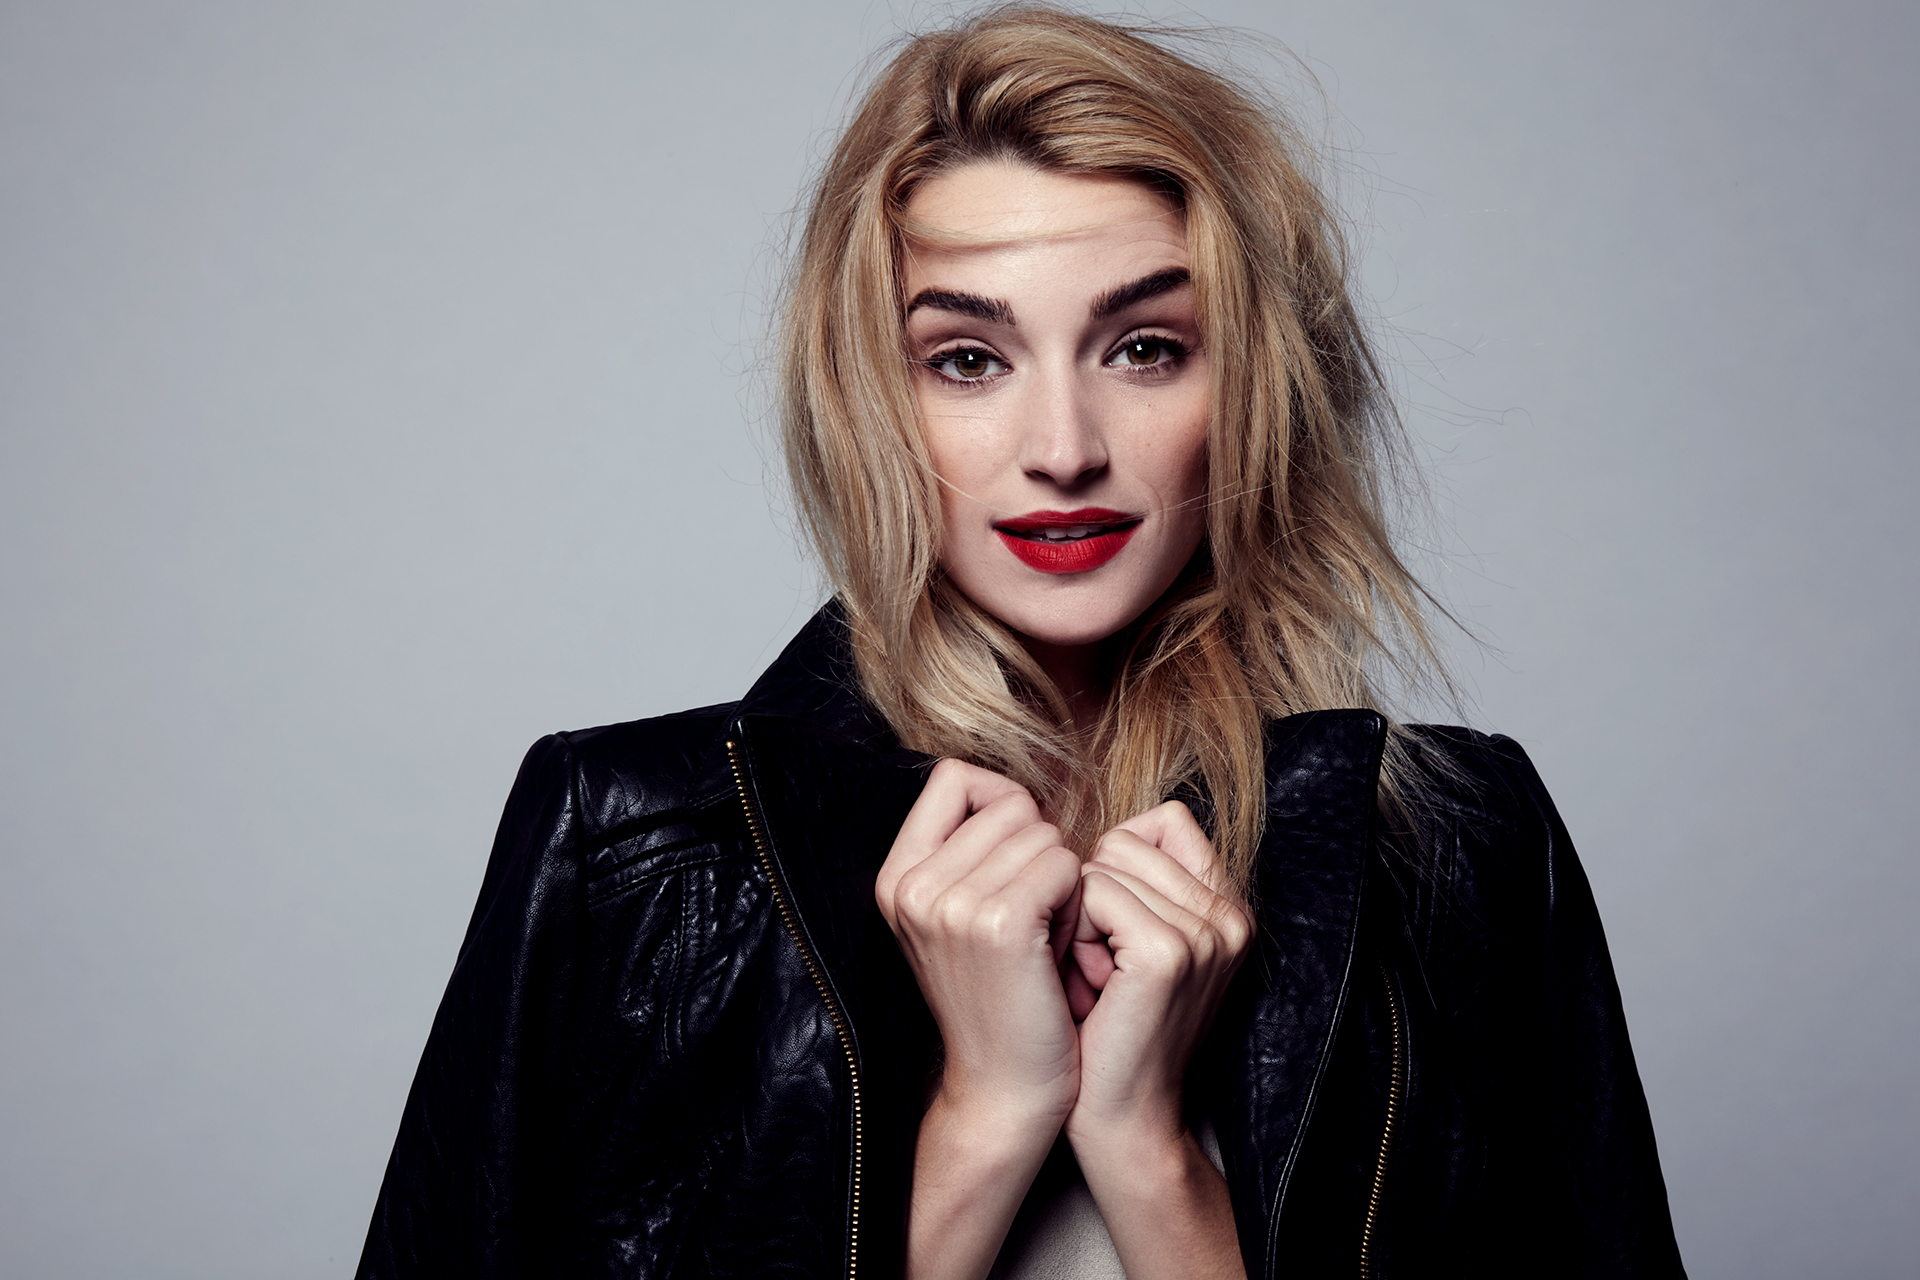 brianne howey wikibrianne howey photos, brianne howey instagram, brianne howey gif, brianne howey wiki, brianne howey scream queens, brianne howey the middle, brianne howey biography, brianne howey facebook, brianne howey, brianne howey age, brianne howey horrible bosses 2, brianne howey tumblr, brianne howey wikipedia, brianne howey sprint, brianne howey horrible bosses, brianne howey revenge, brianne howey measurements, brianne howey imdb, brianne howey bikini